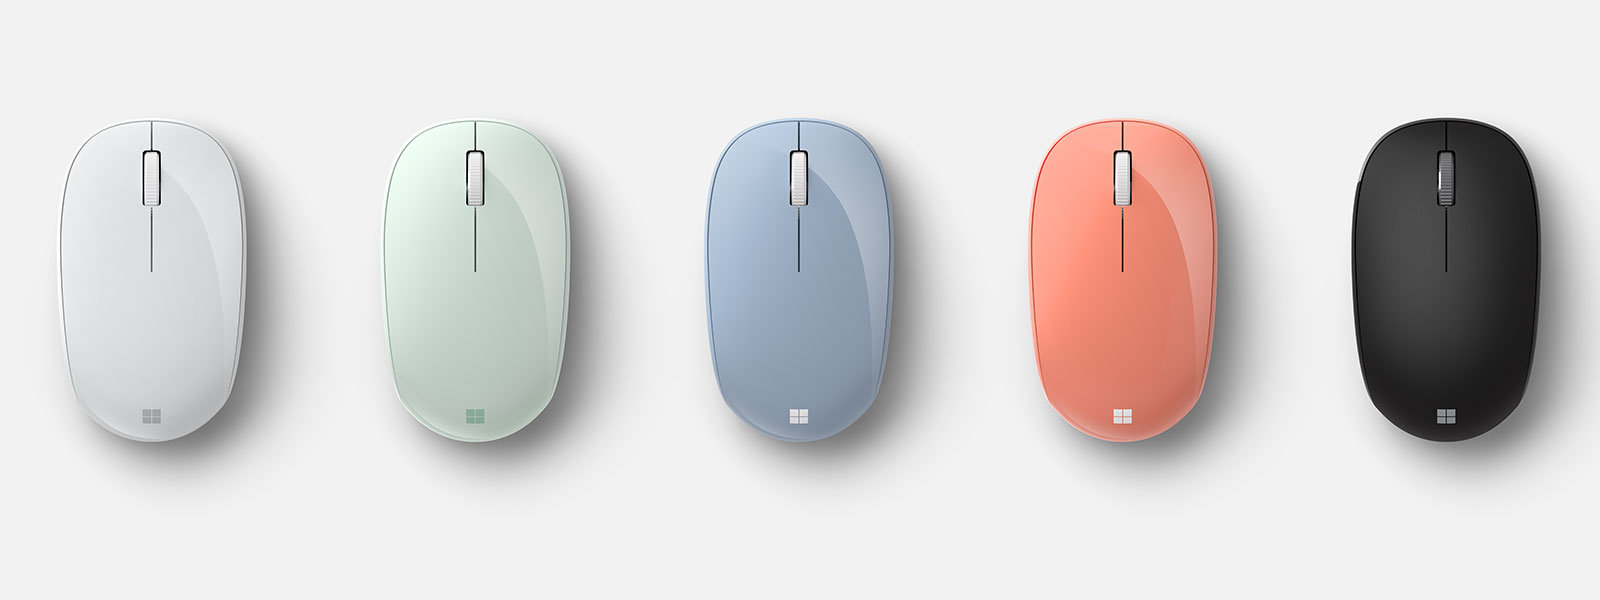 Microsoft Bluetooth® Mouse in all five color options.